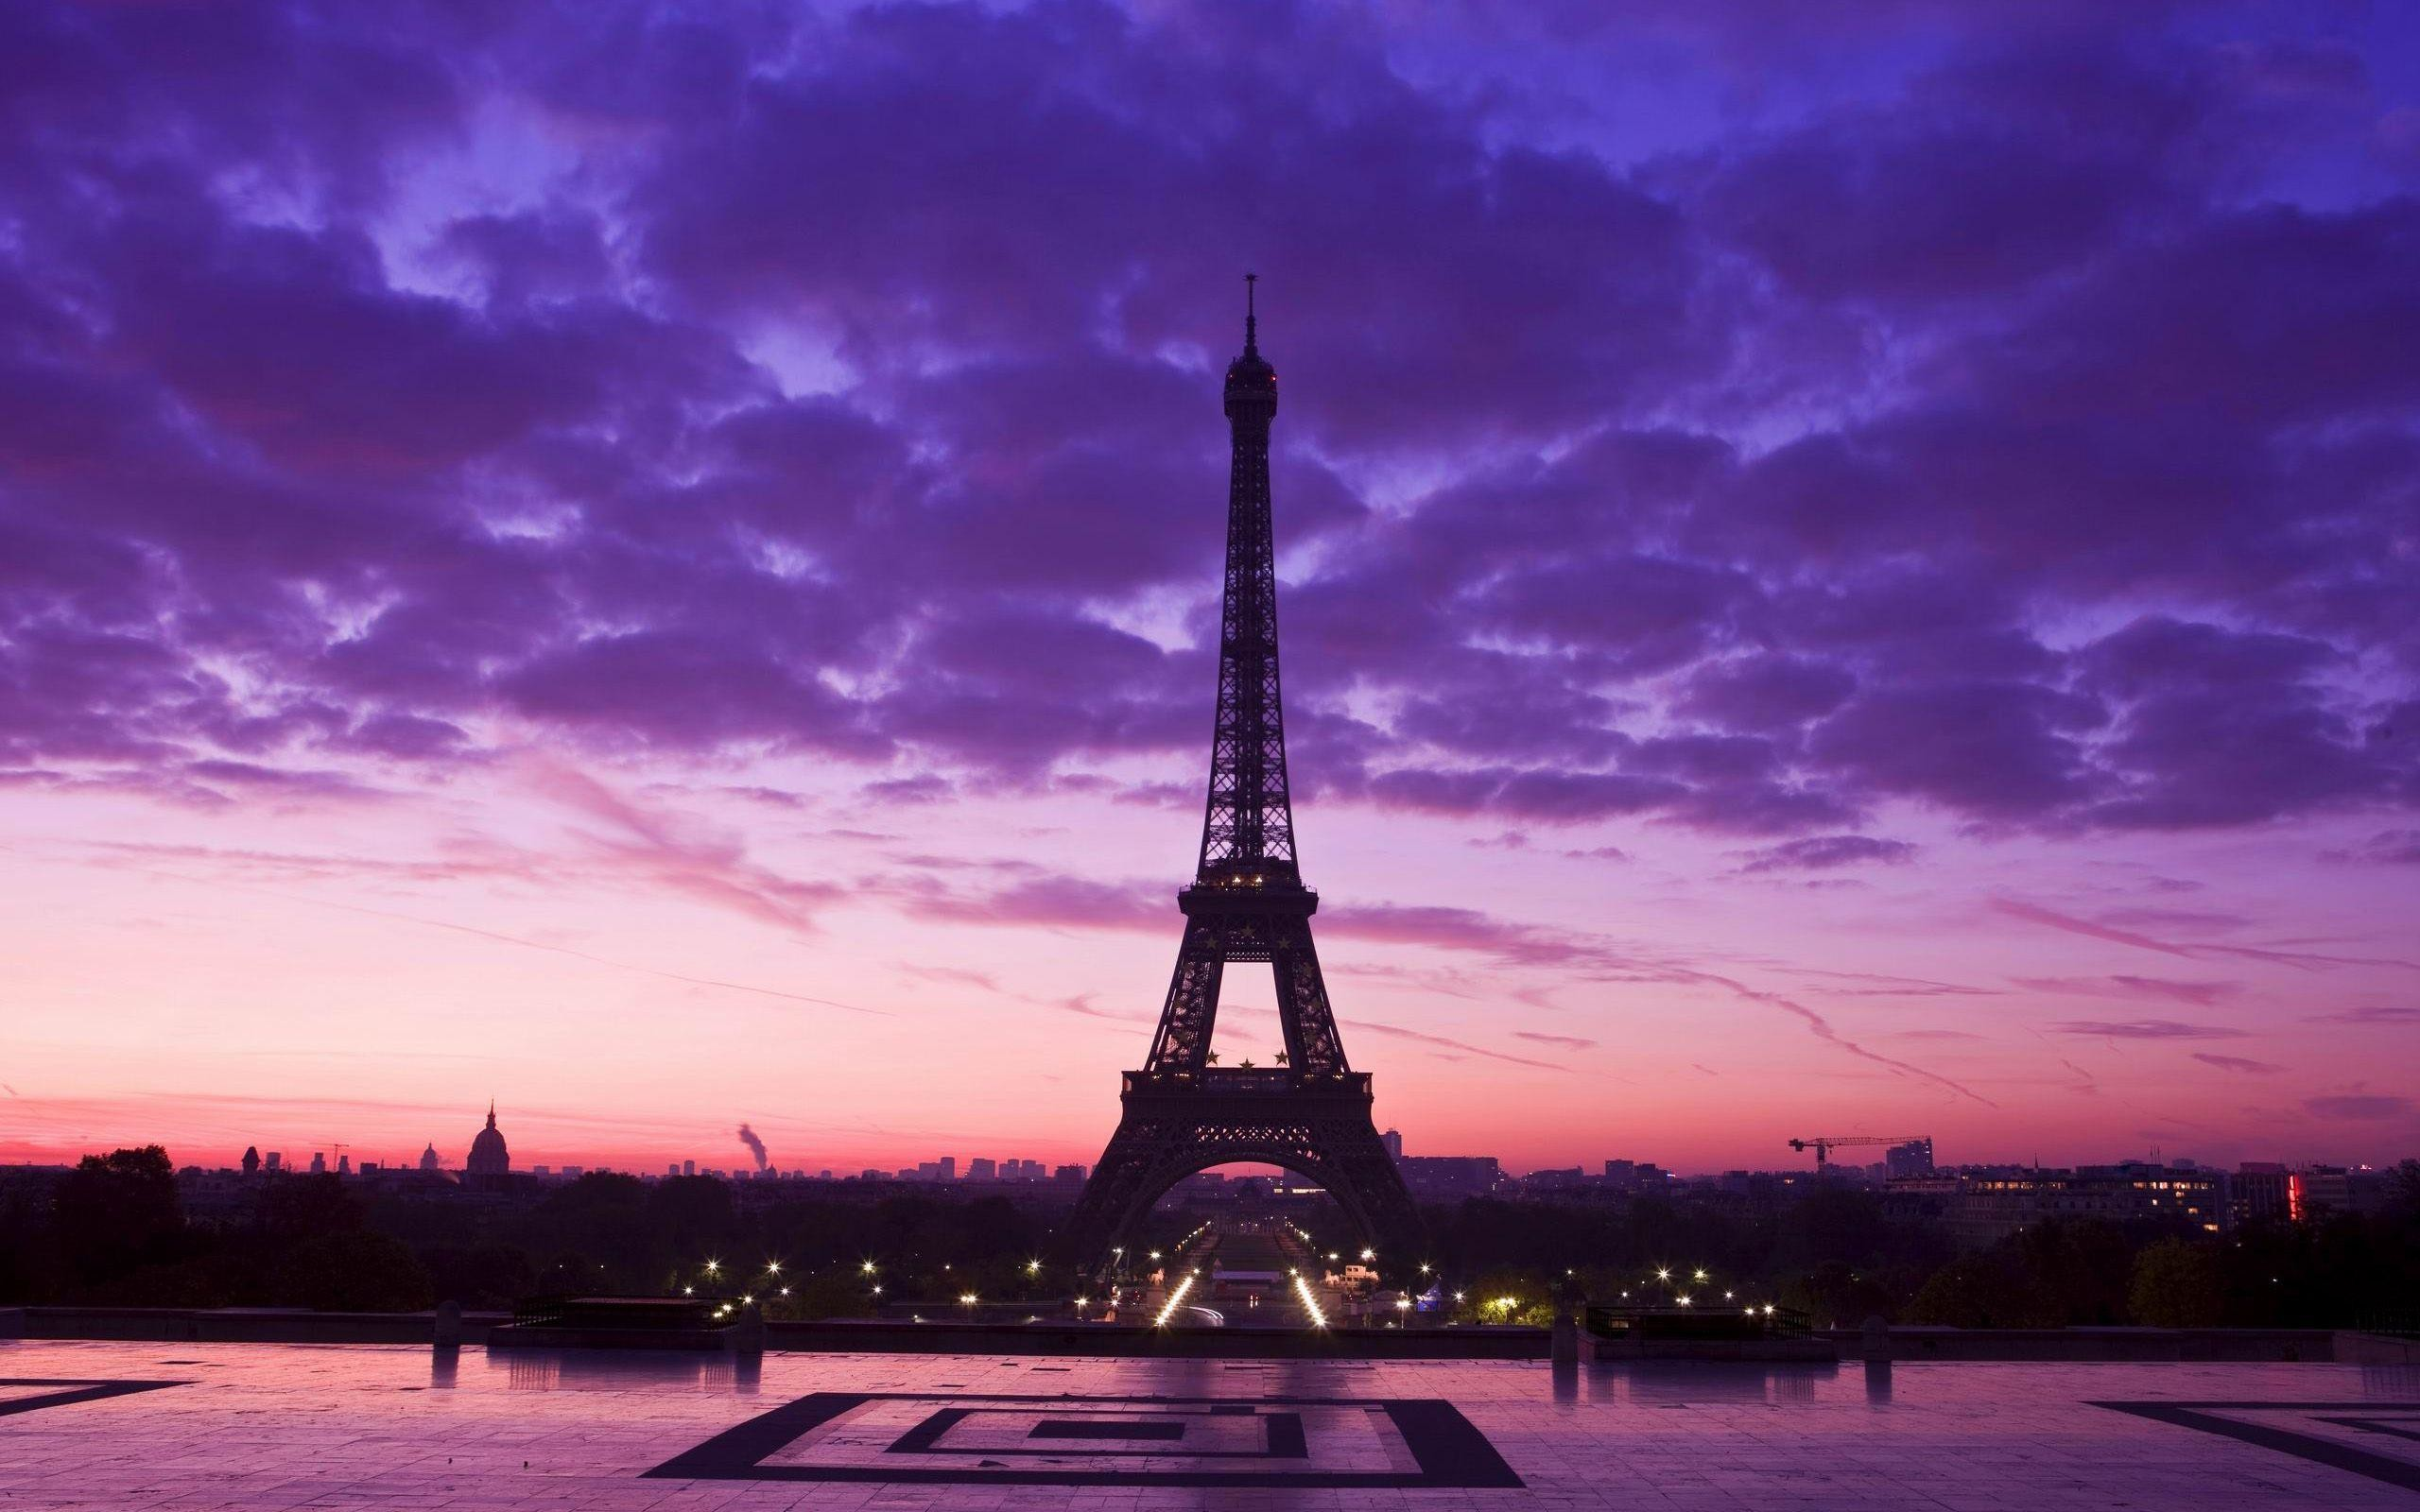 Cute Girly Infinity Wallpapers Cute Paris Wallpaper Girly 48 Images